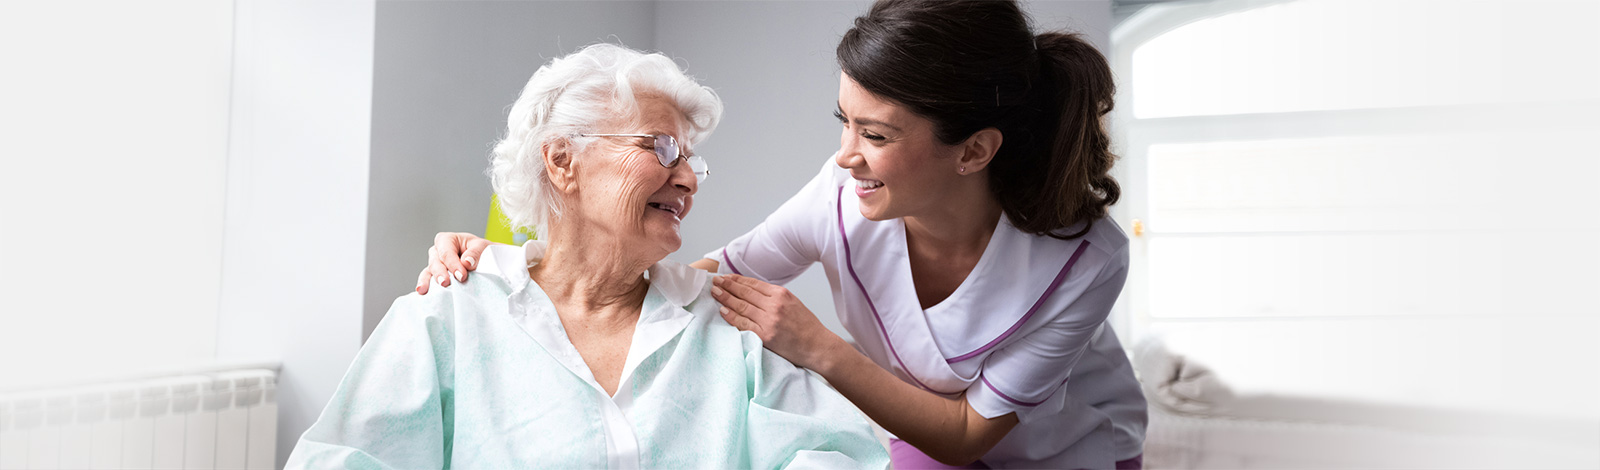 A nurse leaning in to look at a patient with a big smile on her face.